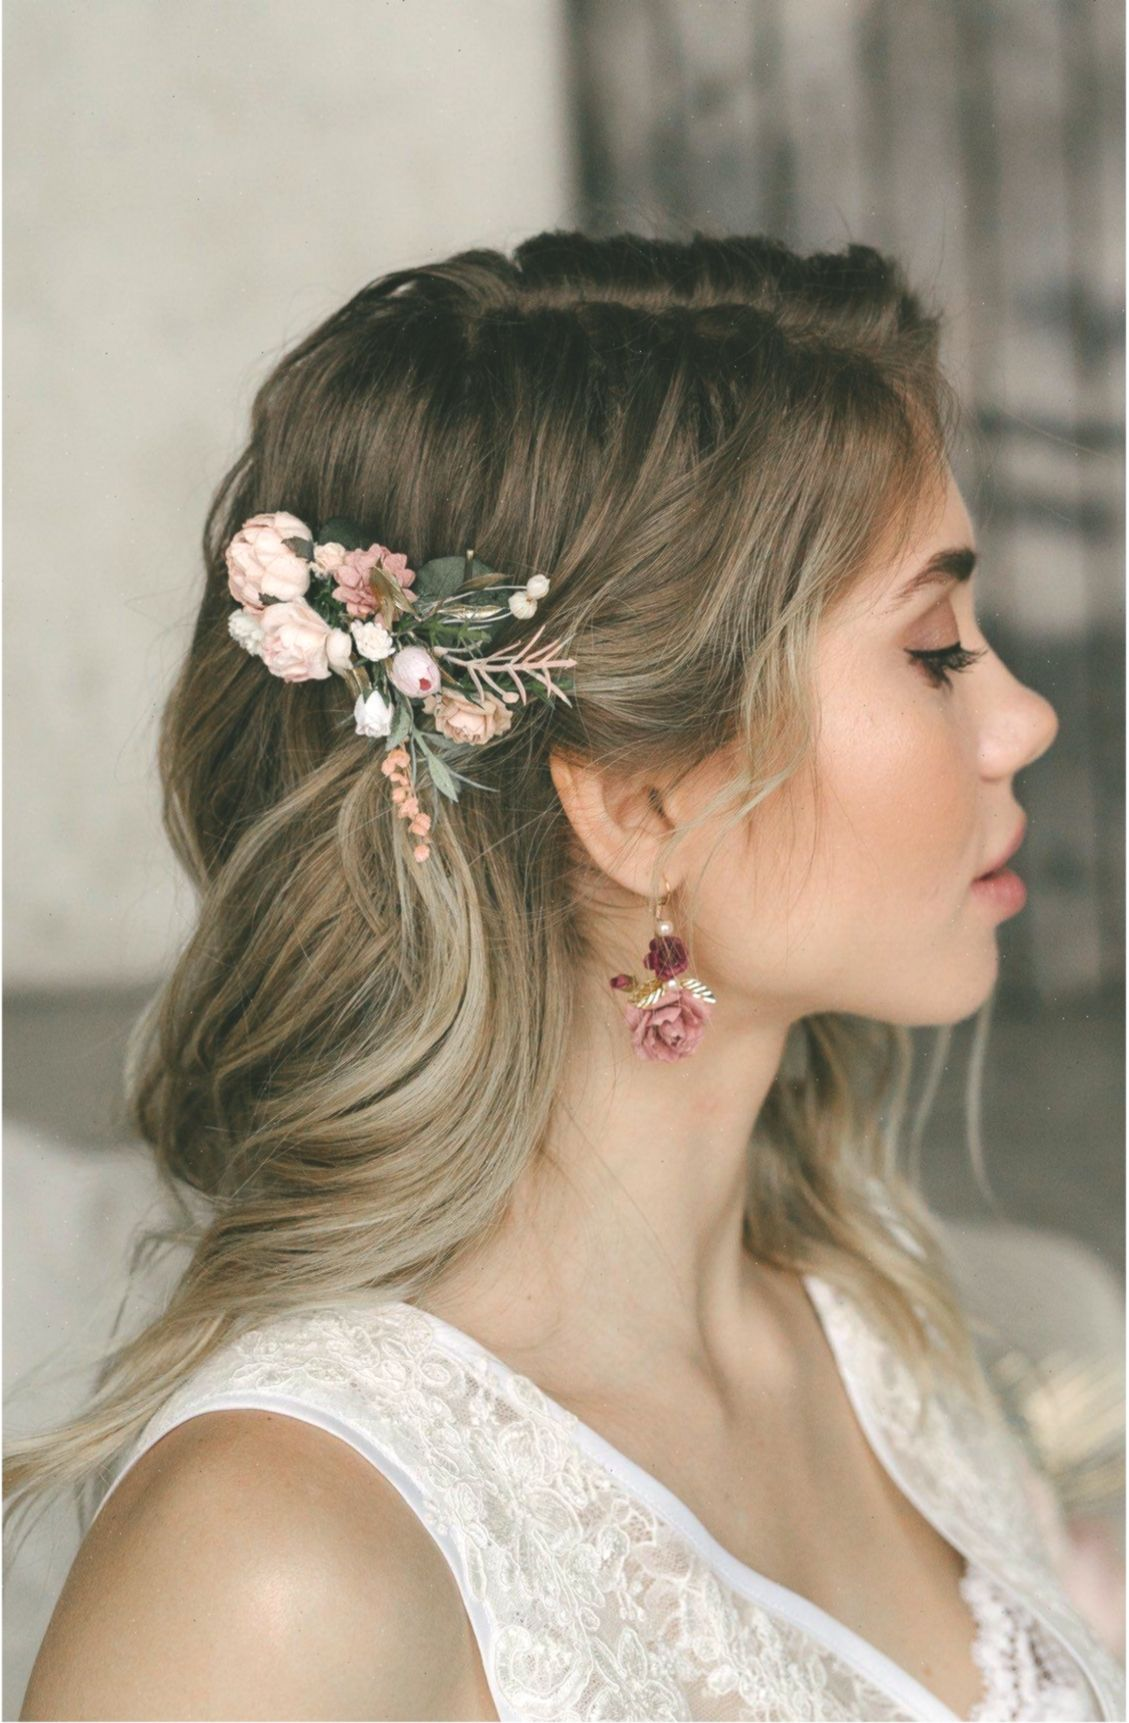 Blume Haarkamm Hochzeit Blume Haarkamm Blume Haarspange Blume Haarteil Braut Haarteil Hochzeit In 2020 Flower Hair Pieces Gold Bridal Hair Comb Bridal Hair Pieces